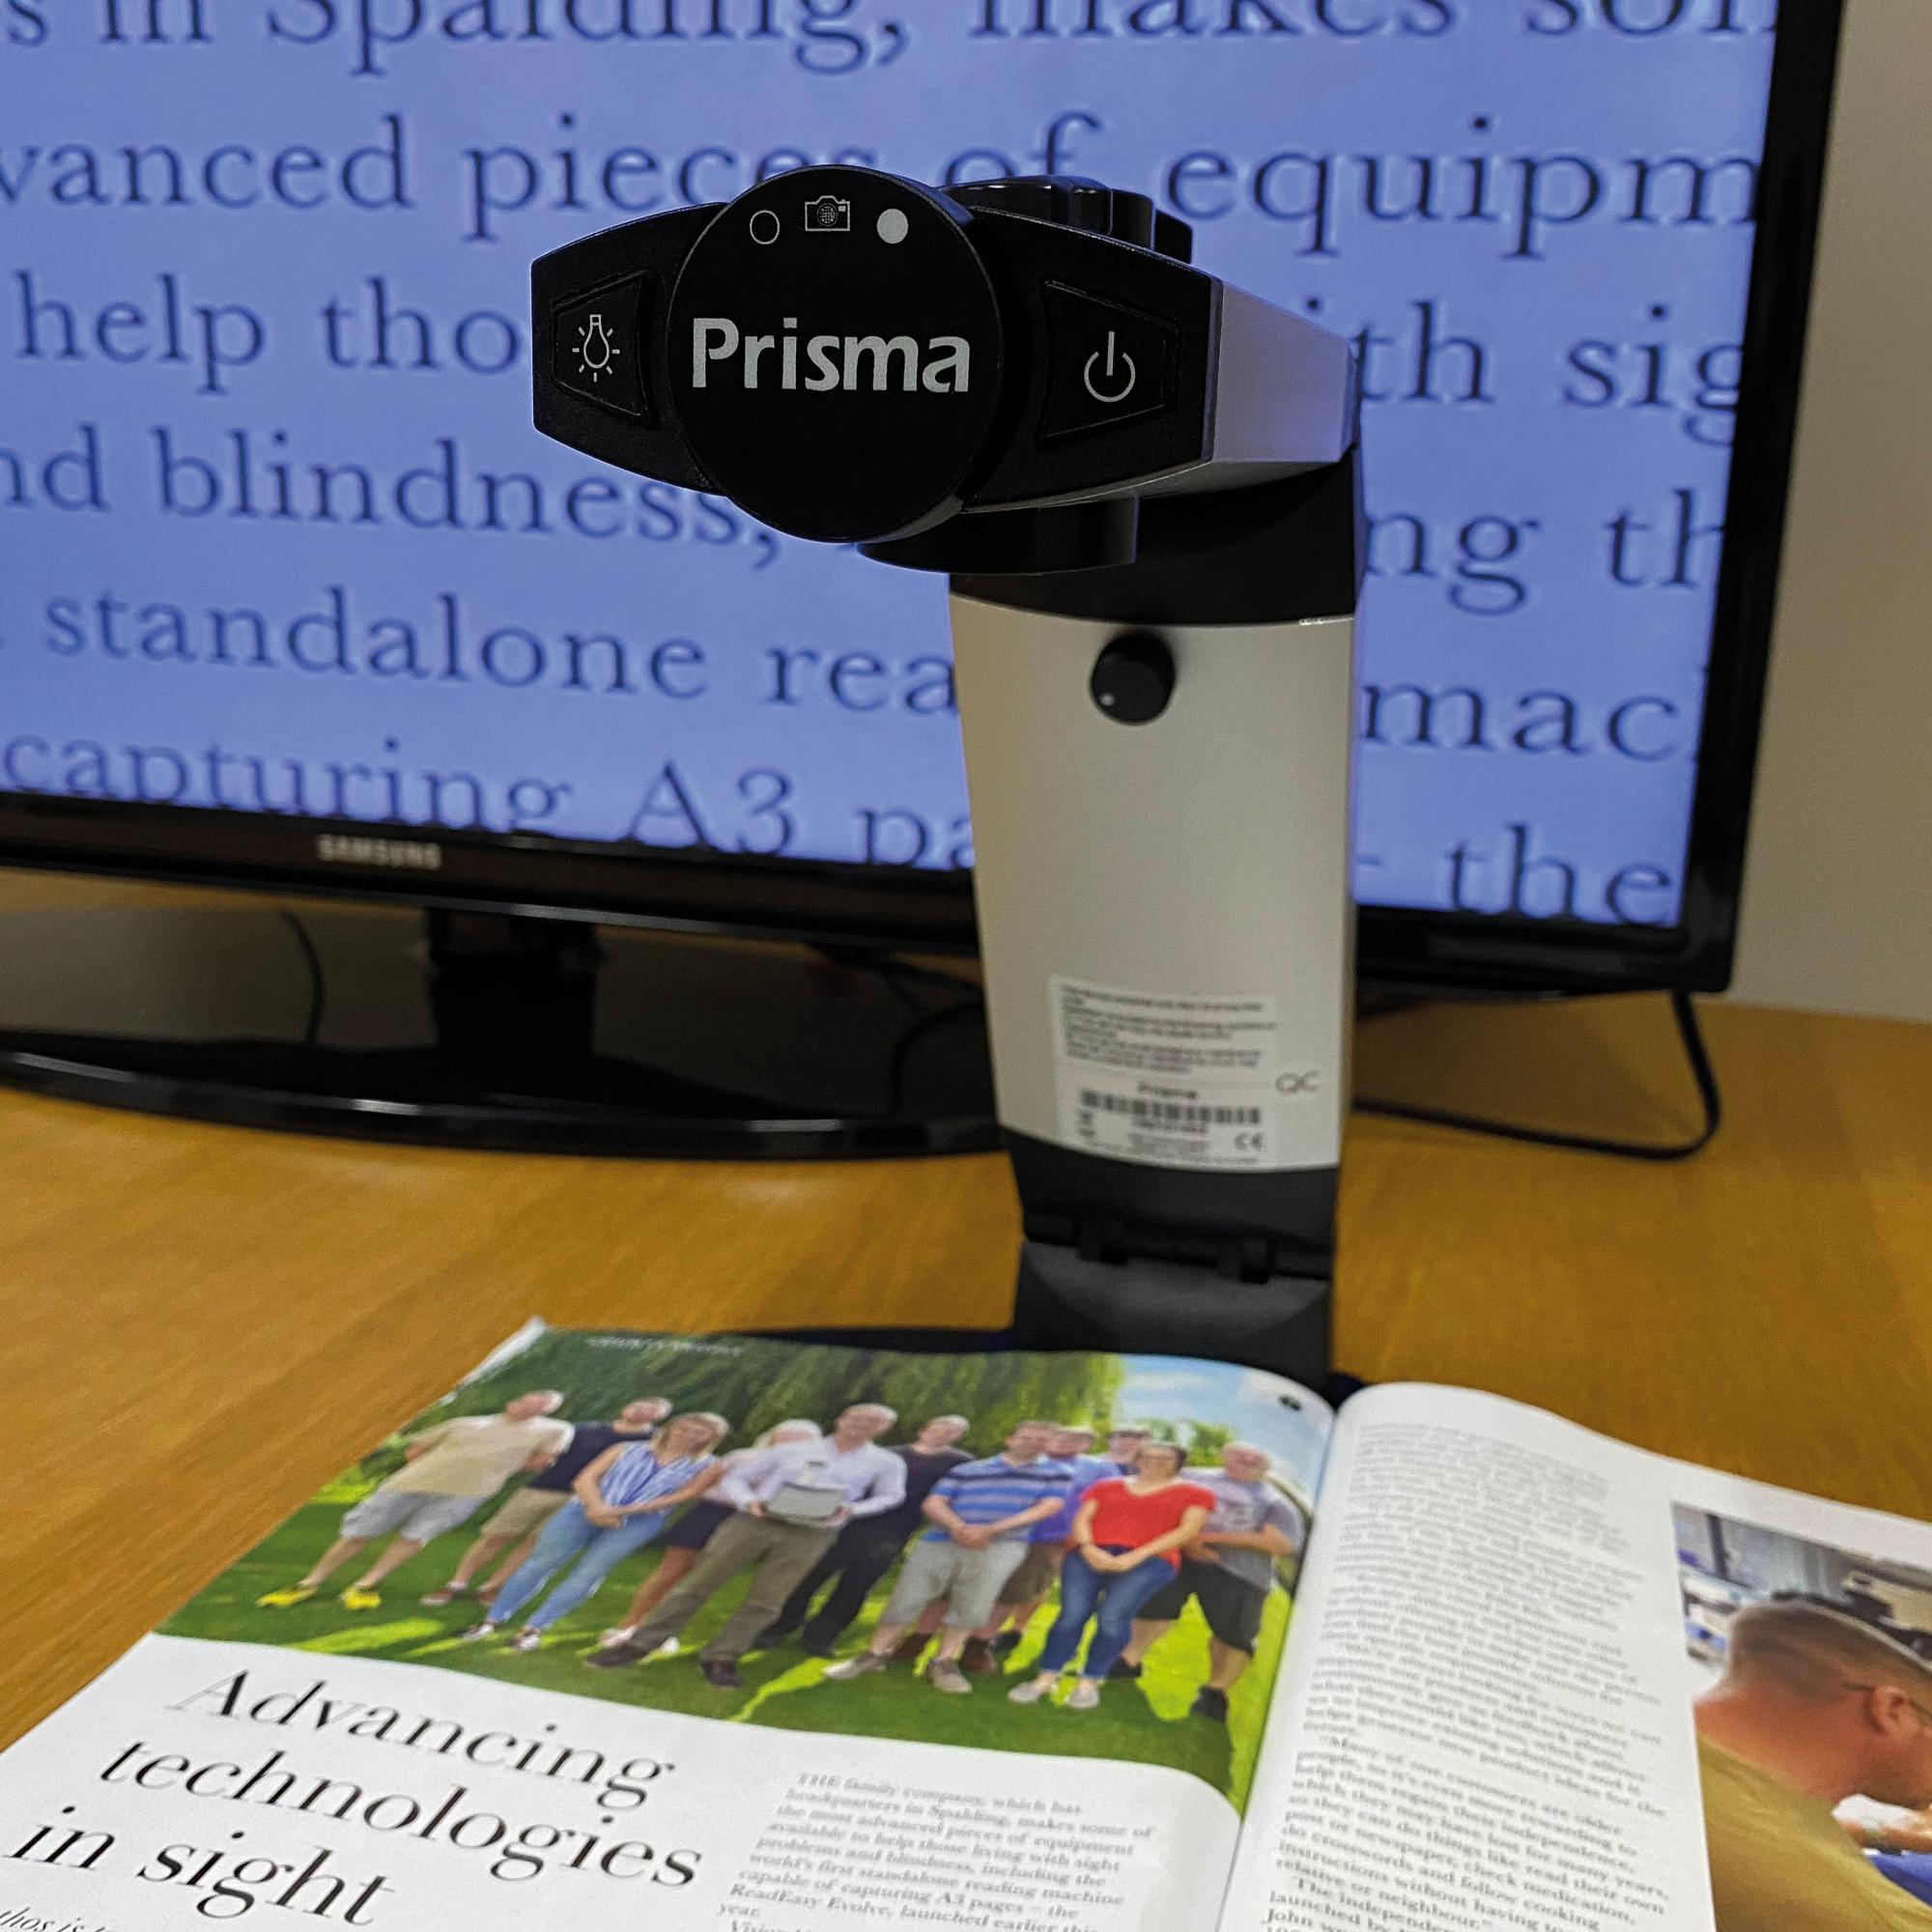 A closer look at the body and head of the Prisma. This stylish, compact device is easily transportable and suitable around the home wherever you can connect a monitor.